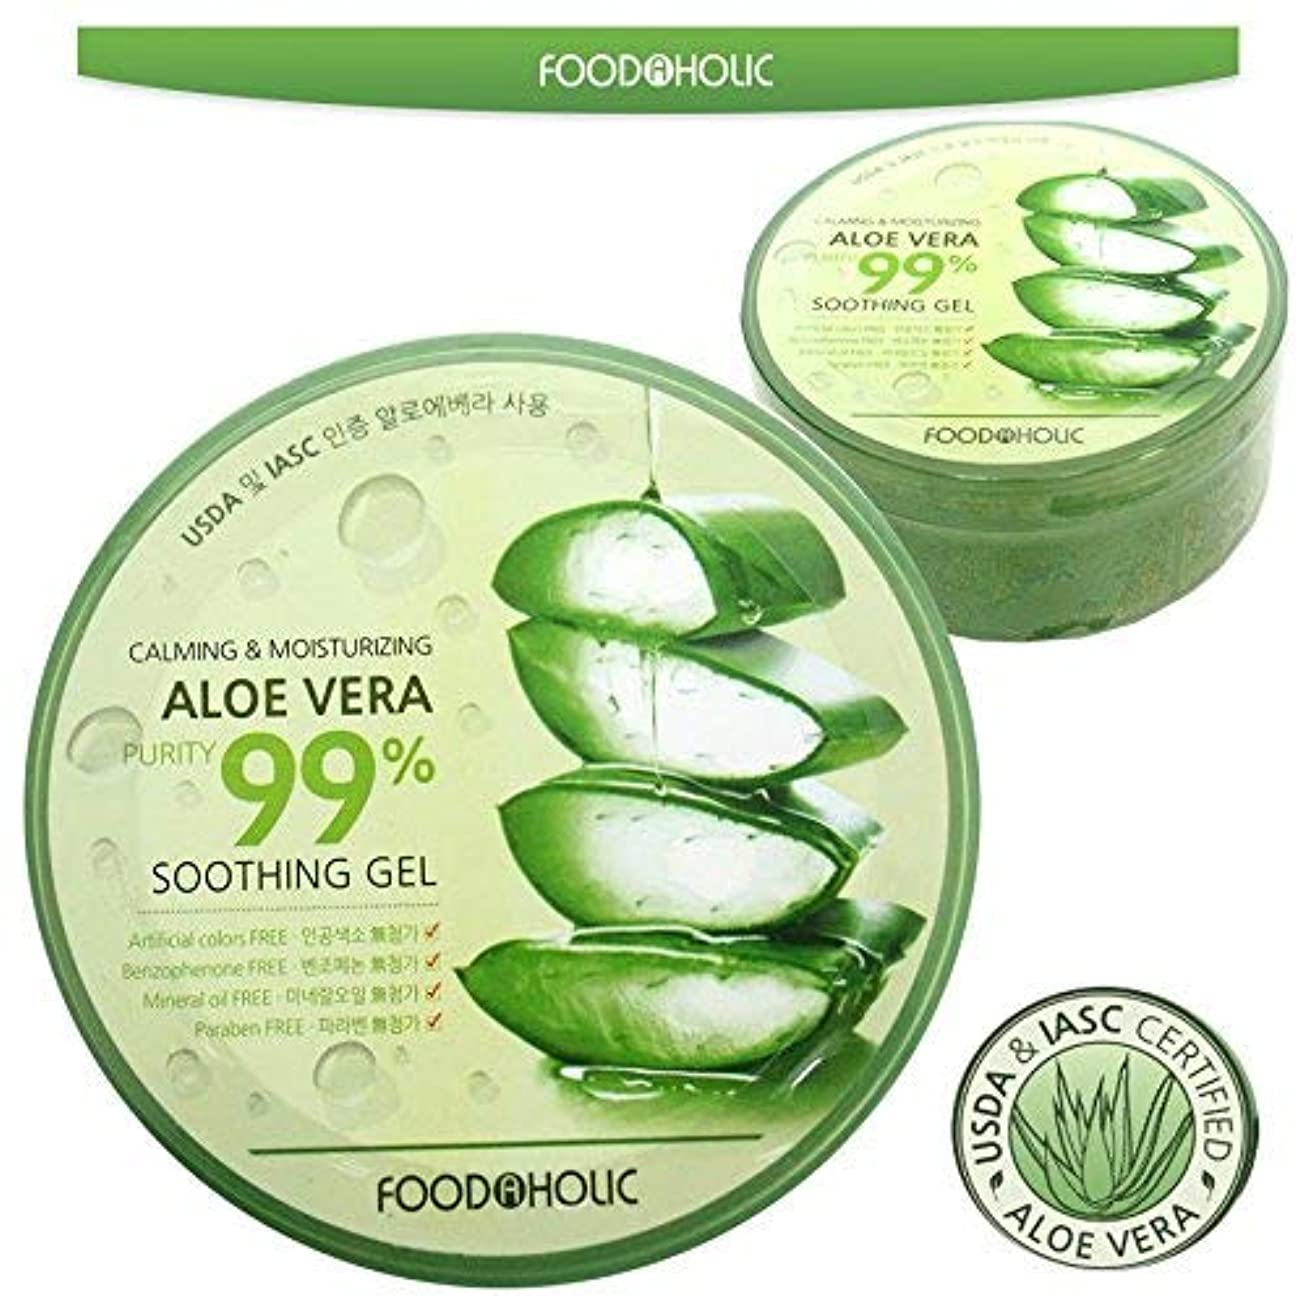 [FOOD A HOLIC] 穏やかな&保湿アロエベラ純度は99%スージングジェル(300ml * 1EA) / Calming & Moisturizing Aloe Vera Purity 99% Soothing...